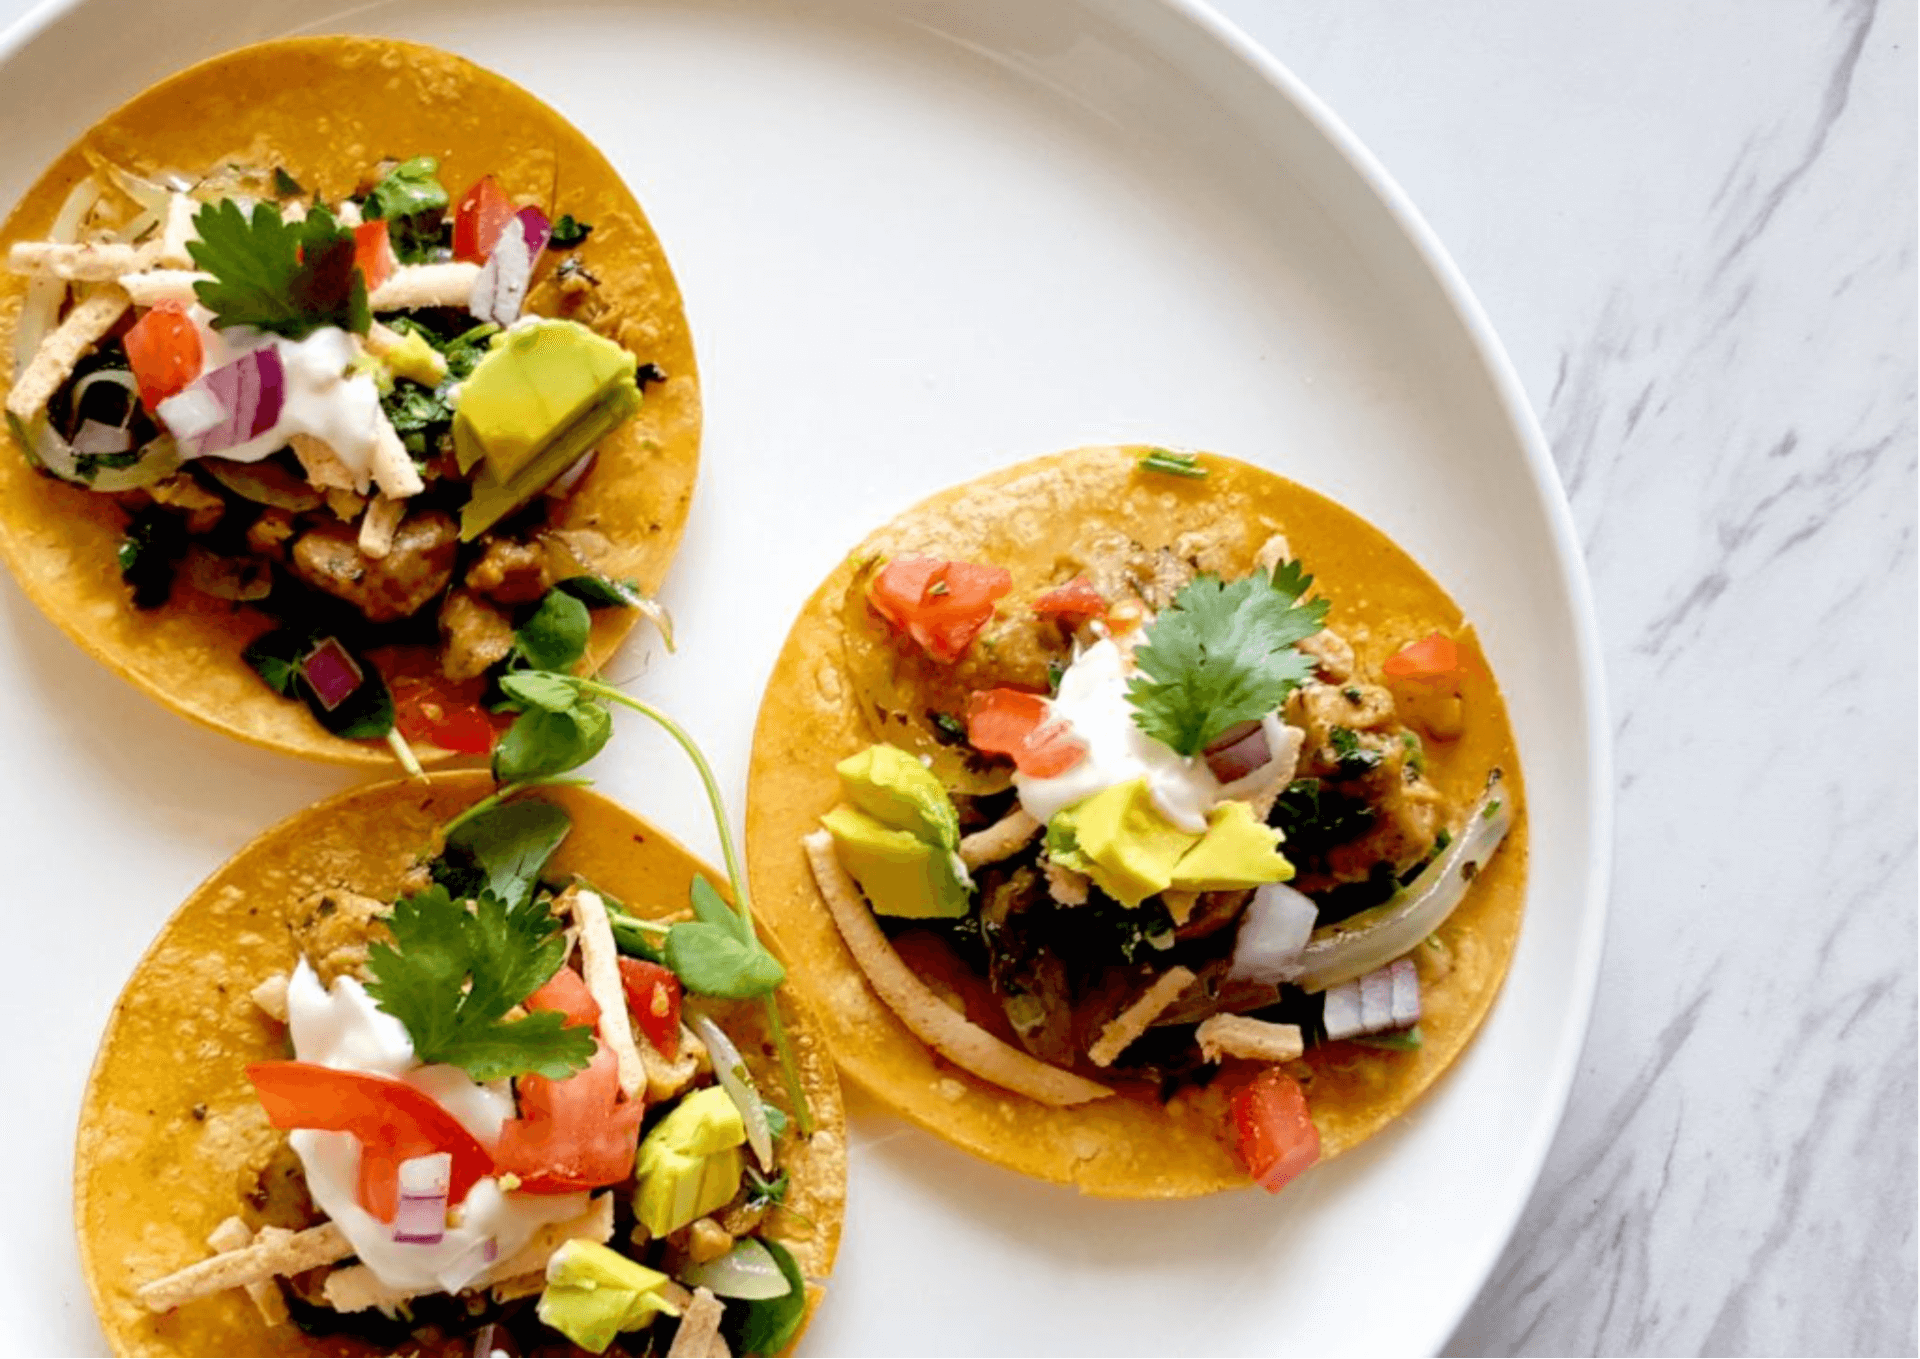 Vegan Street Tacos by Mark Reinfeld